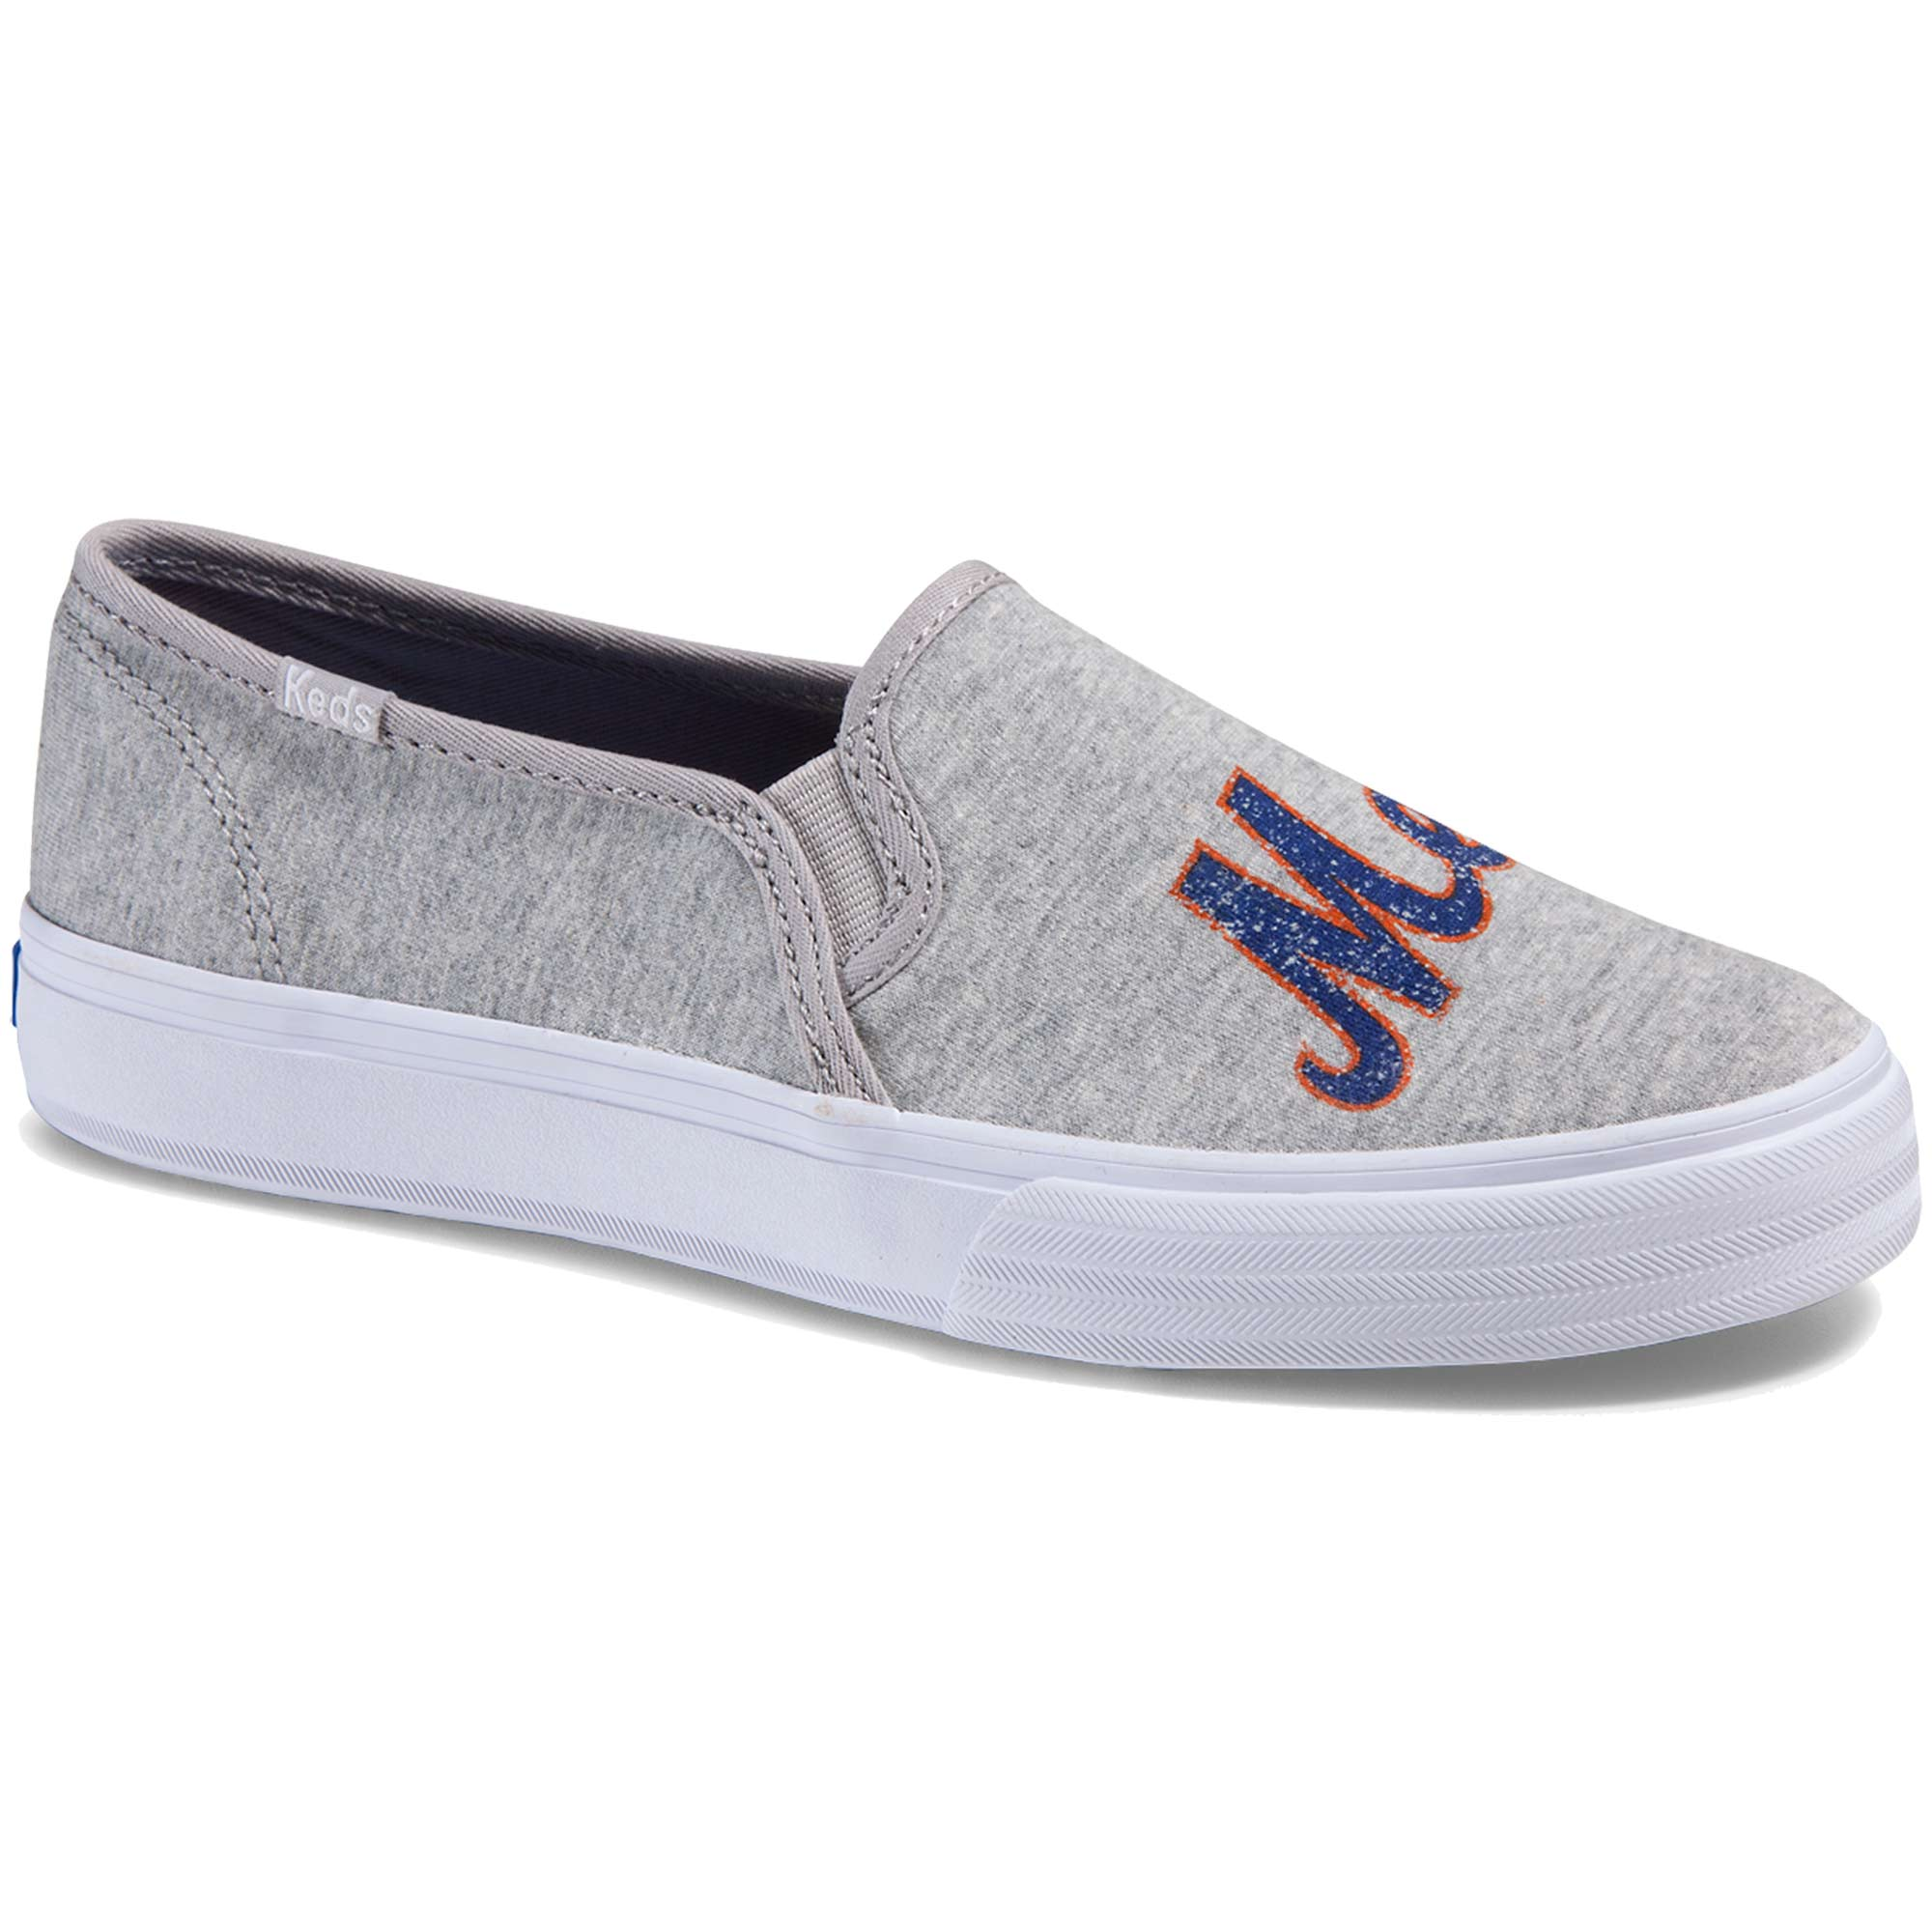 Keds Double Decker MLB Slip-On Sneaker (Women's)